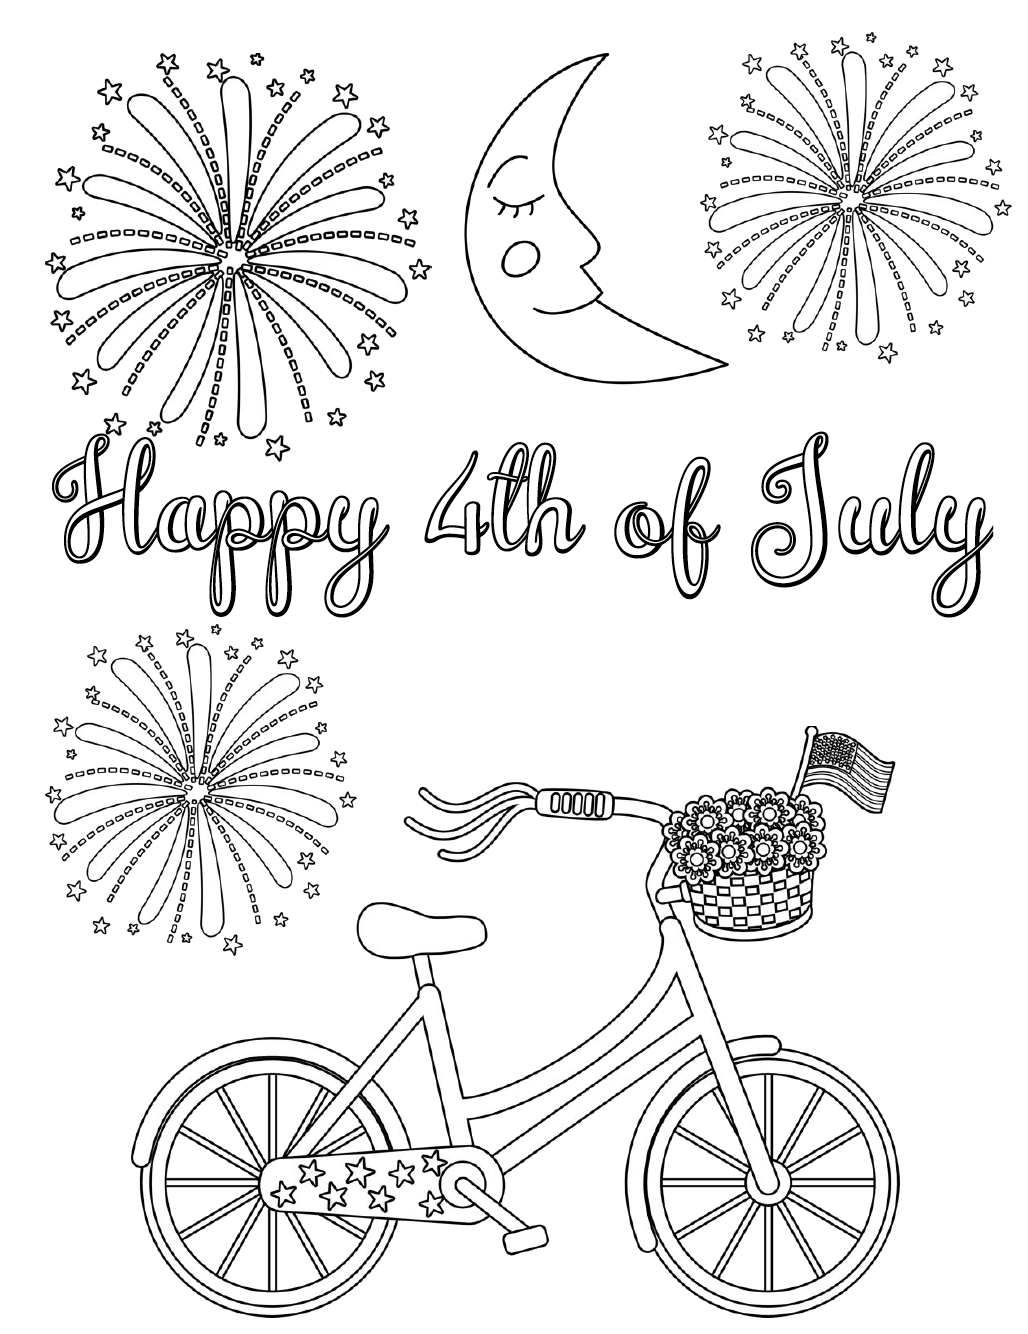 coloring pictures 4th of july free printable 4th of july coloring pages scribblefun july 4th of coloring pictures